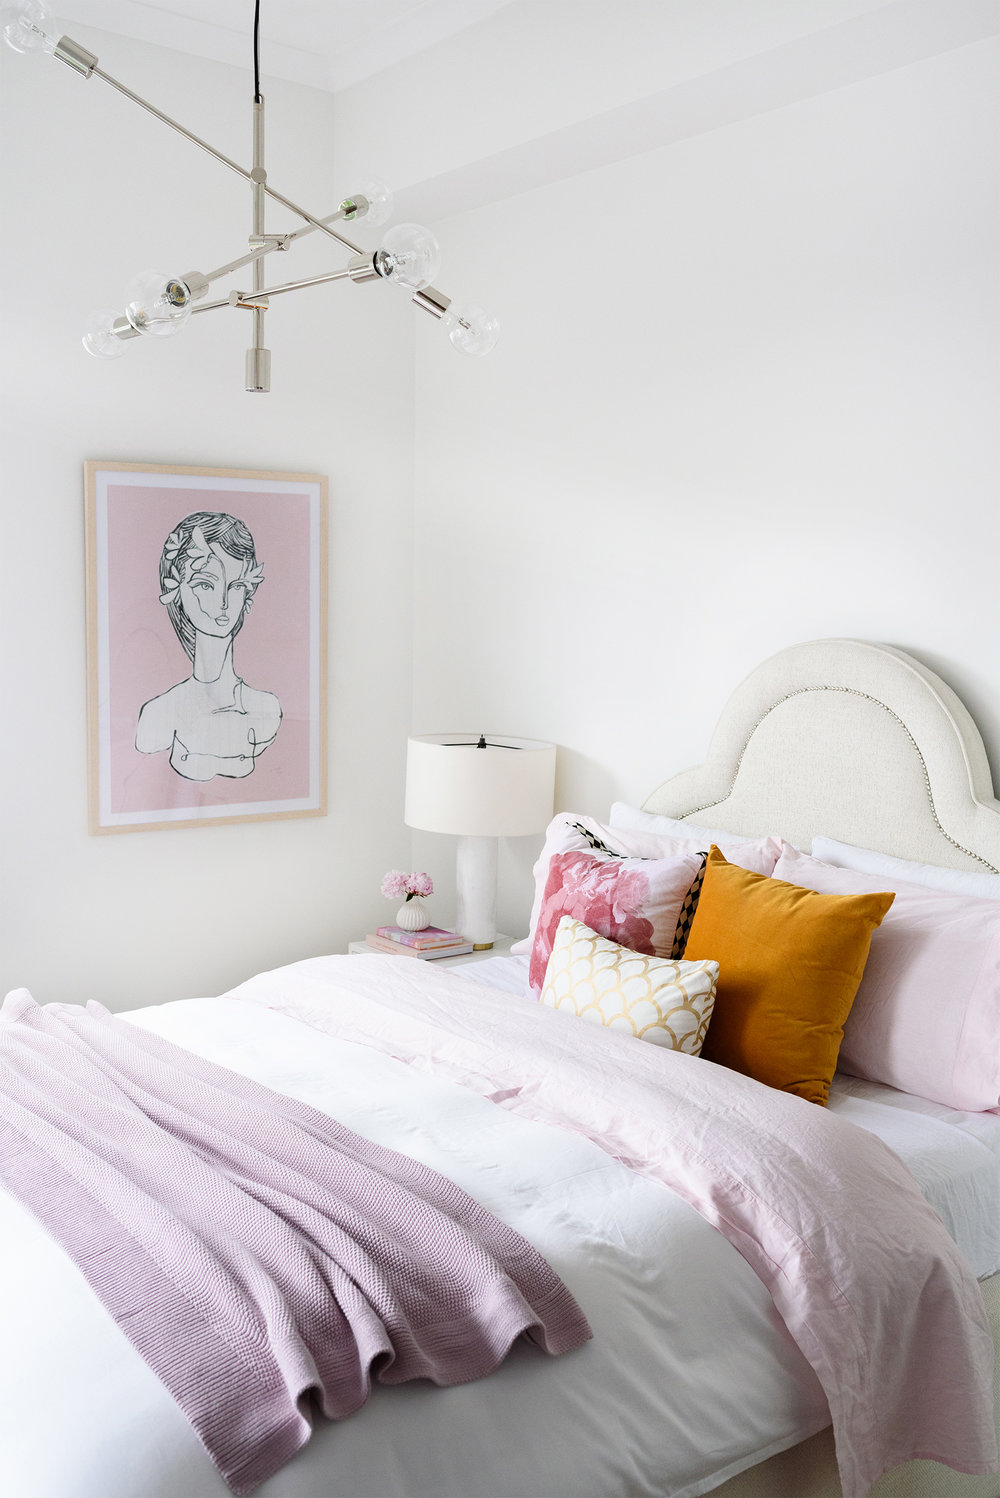 adore_home_magazine_bedroom_elegant_makeover_bedding_canningvale_linen_fresh_sheets_pastel_pink_lilac.jpg